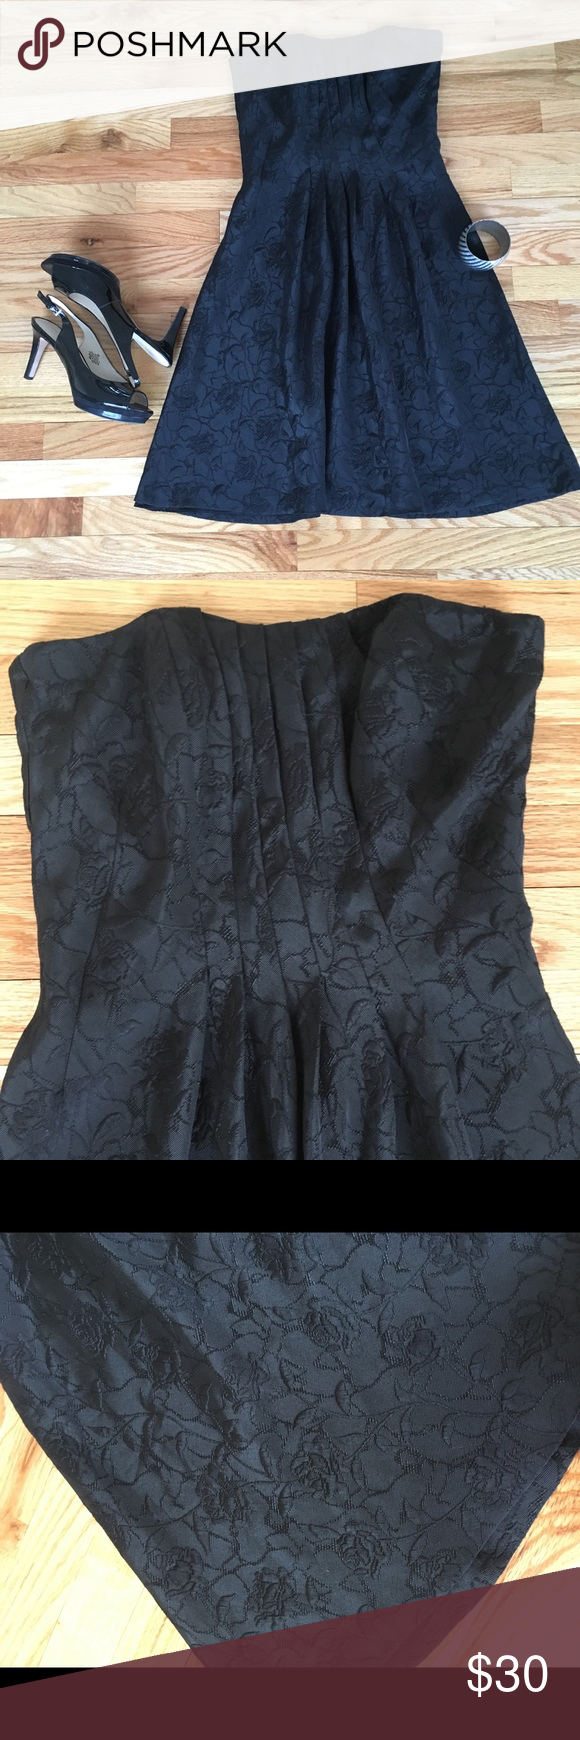 44626f00a1c968 White House Black Market Black Strapless Dress Perfect little black dress!  This White House Black Market dress is just the thing for your next special  ...